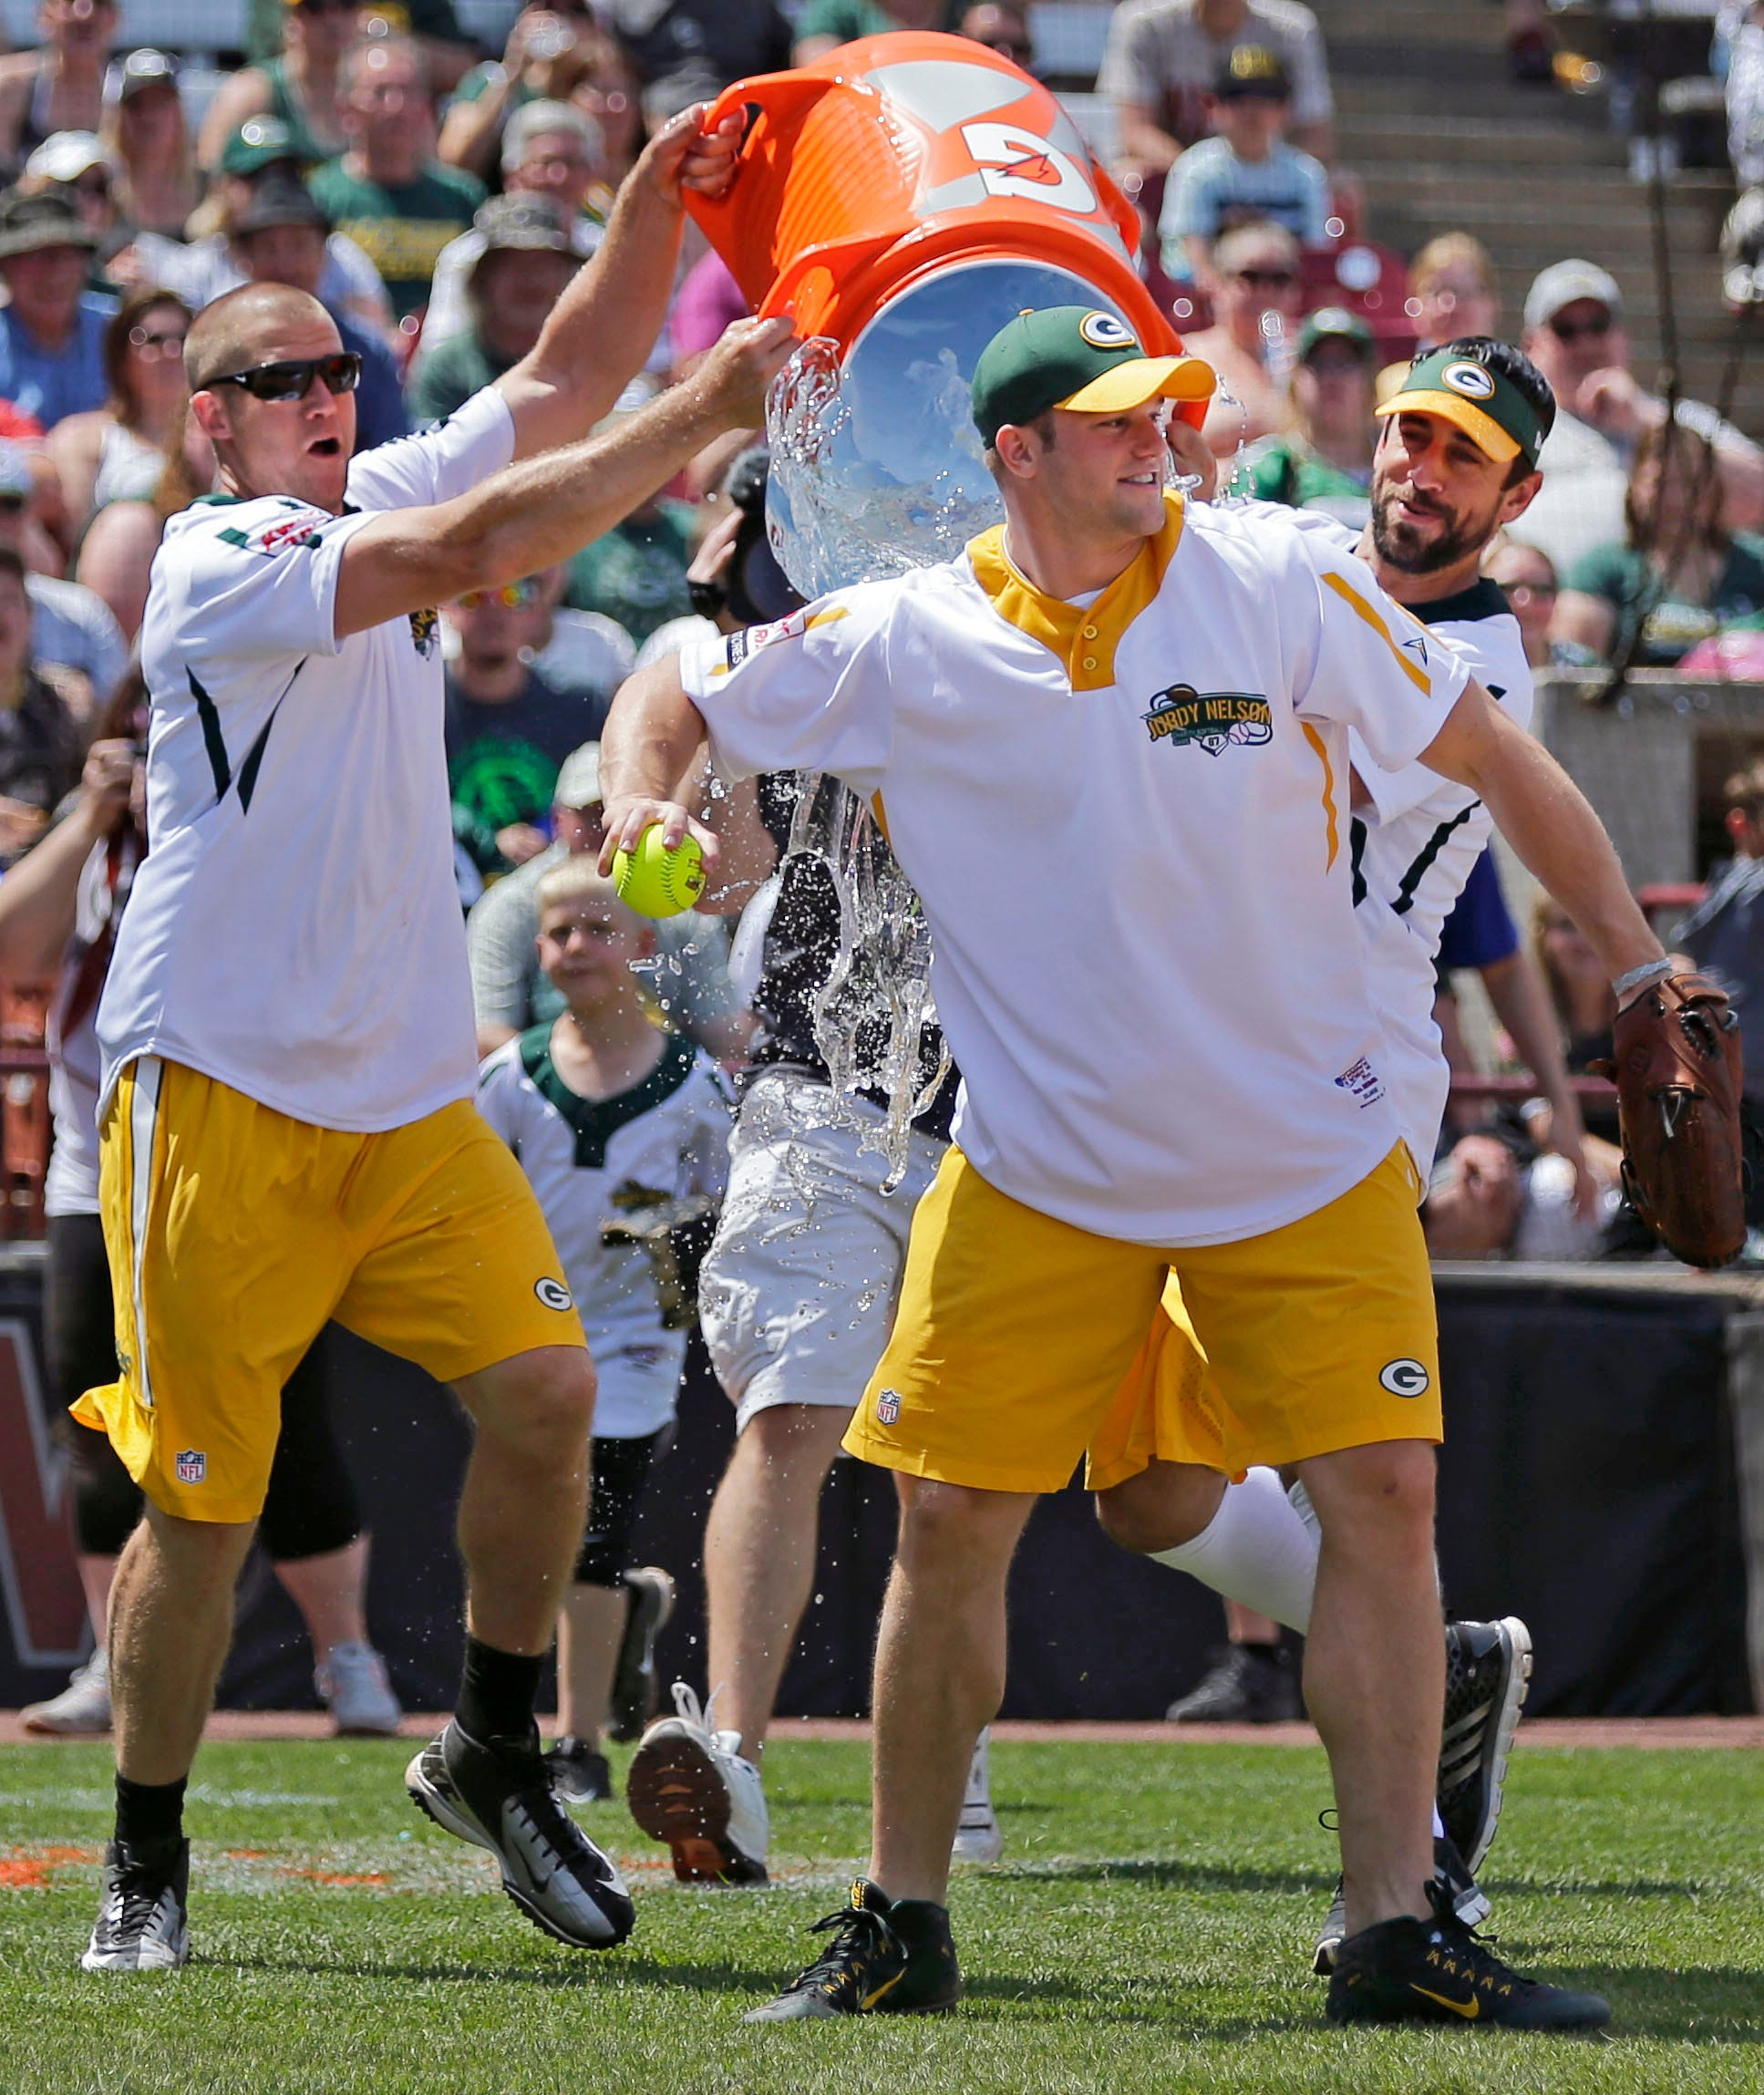 Packers bring fun to Jordy Nelson softball game